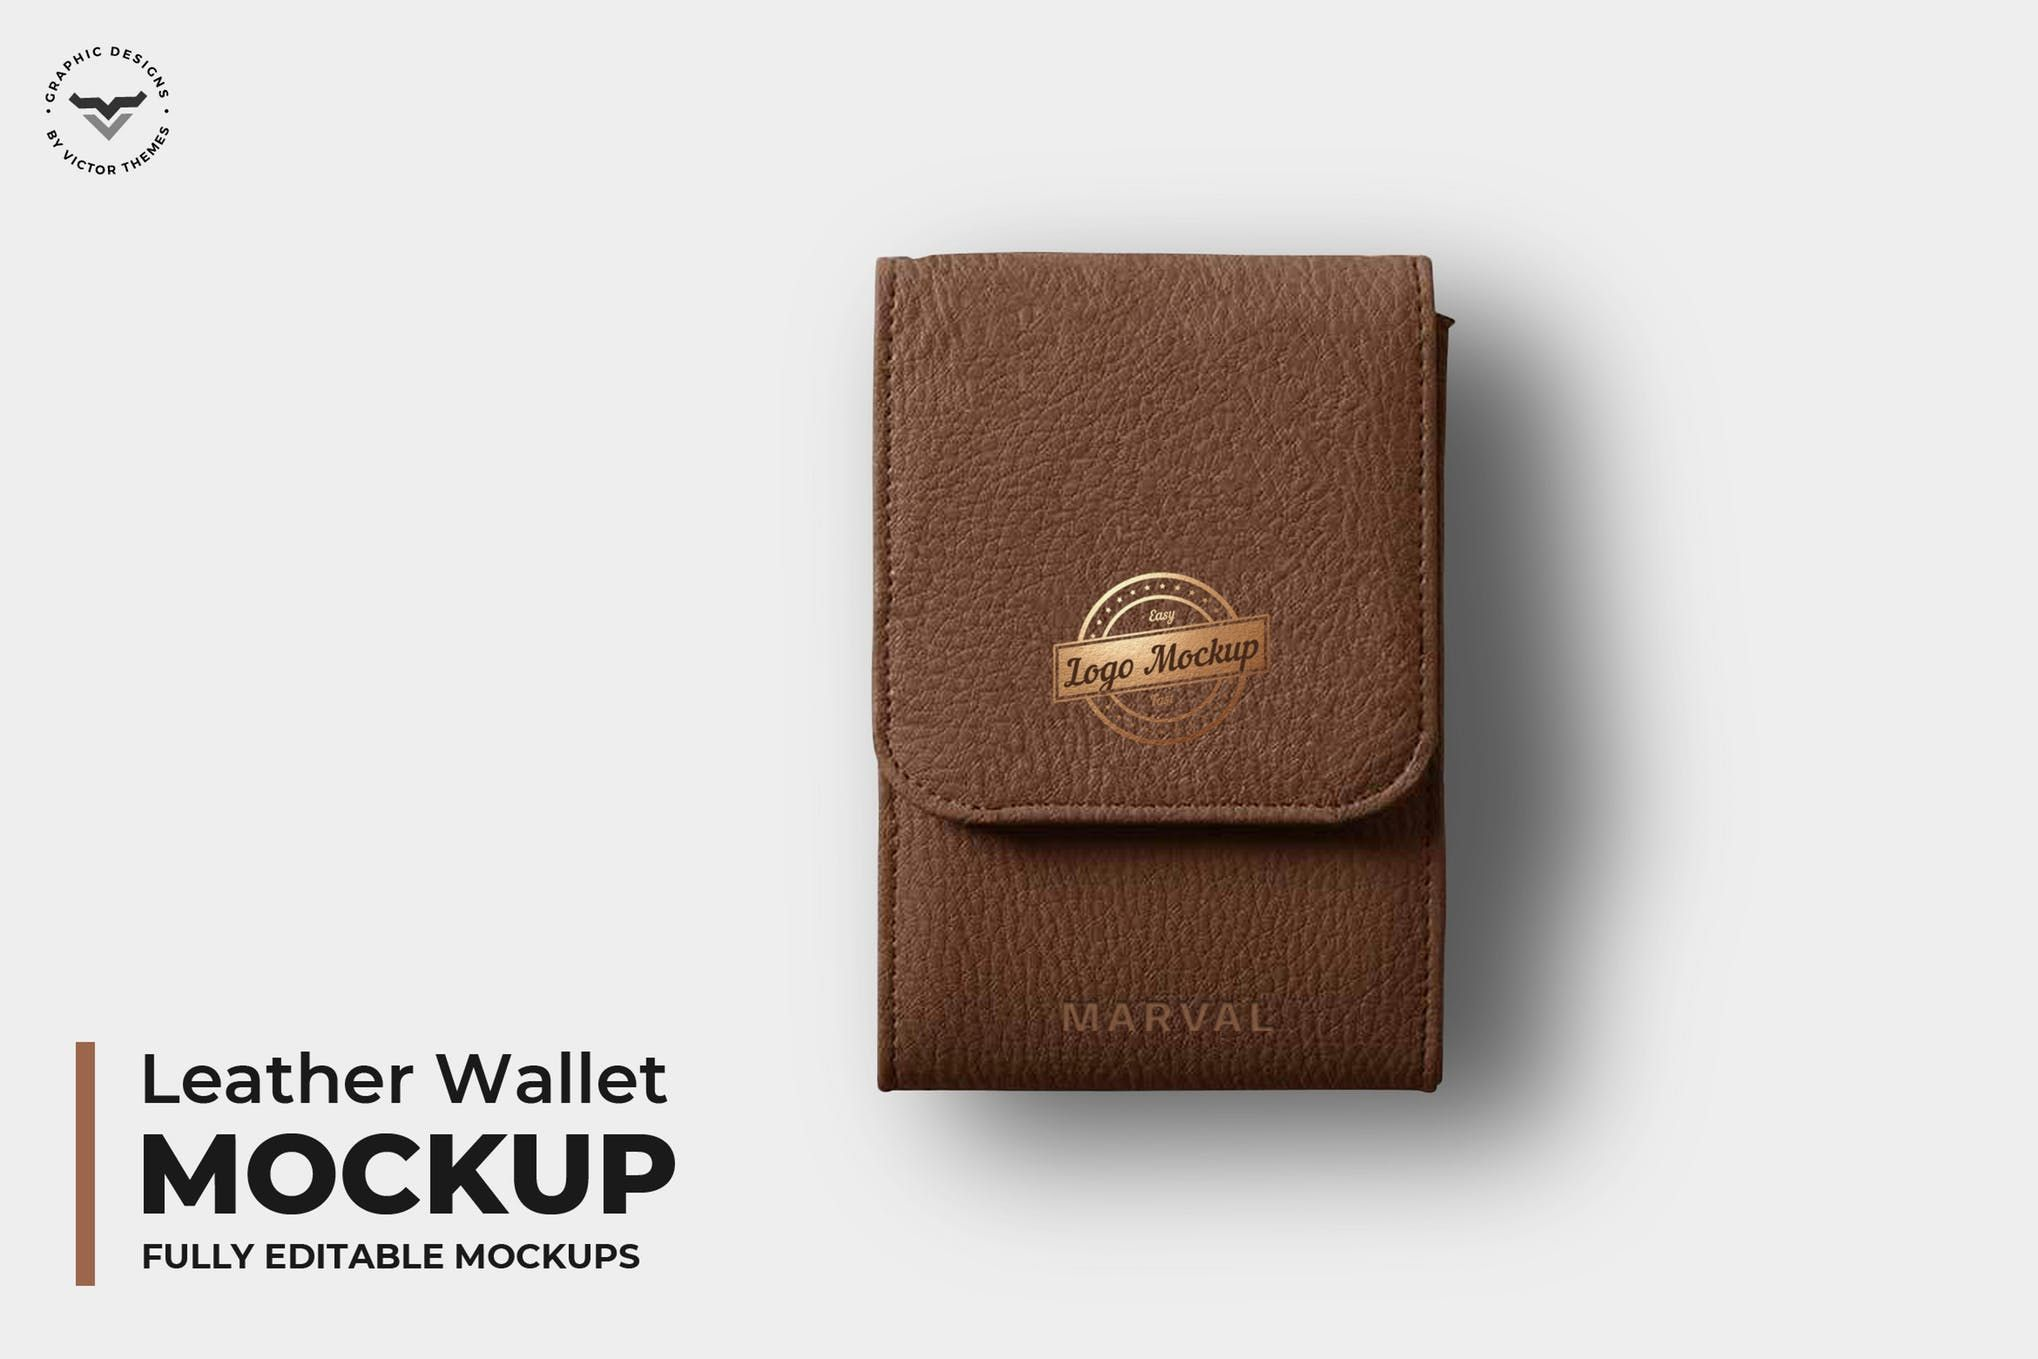 Leather Wallet Mockups By Victorthemes On Envato Elements Leather Wallet Wallet Leather